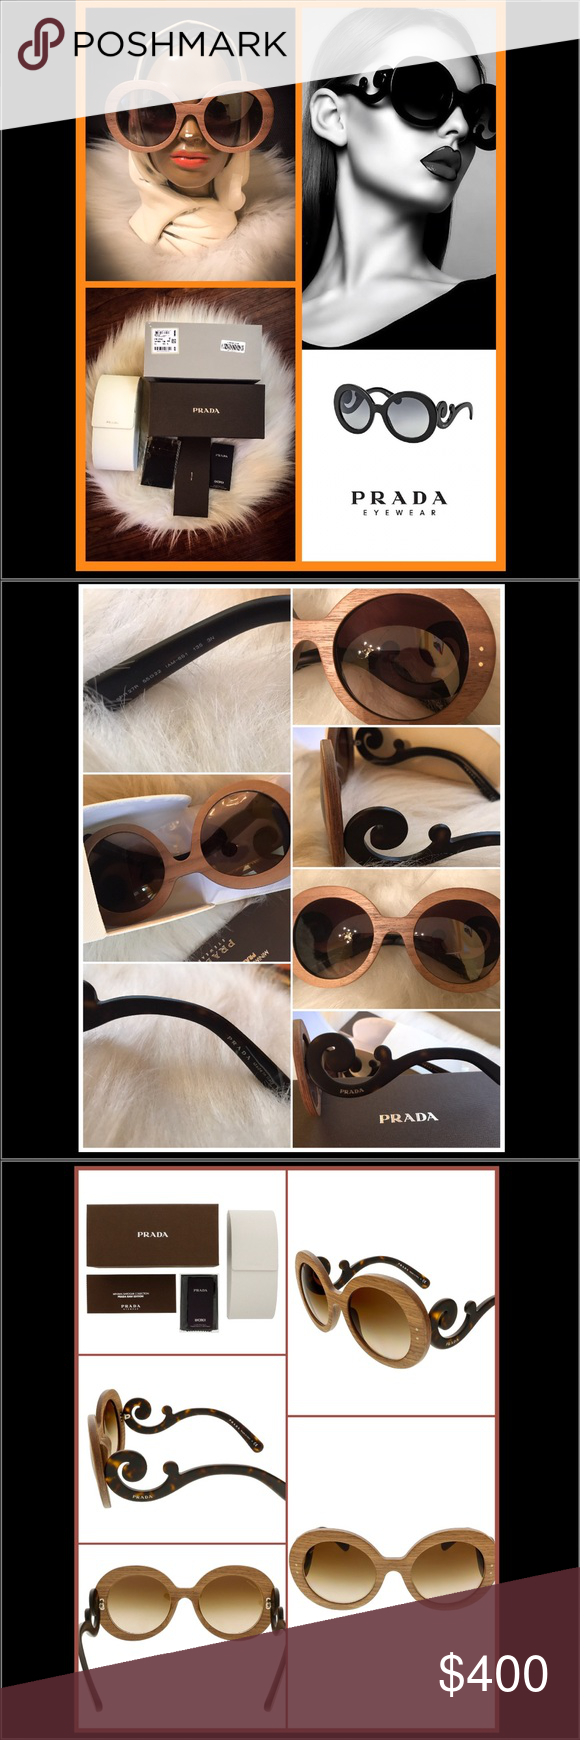 a0aae311087c ️Prada Women s Baroque SPR27R SPR 27 R IAM-6S1 Wood Nut Canaletto Sunglasses  55mm. Be BOLD. Be AUTHENTIC. Don t miss this exclusive design from the Prada  ...